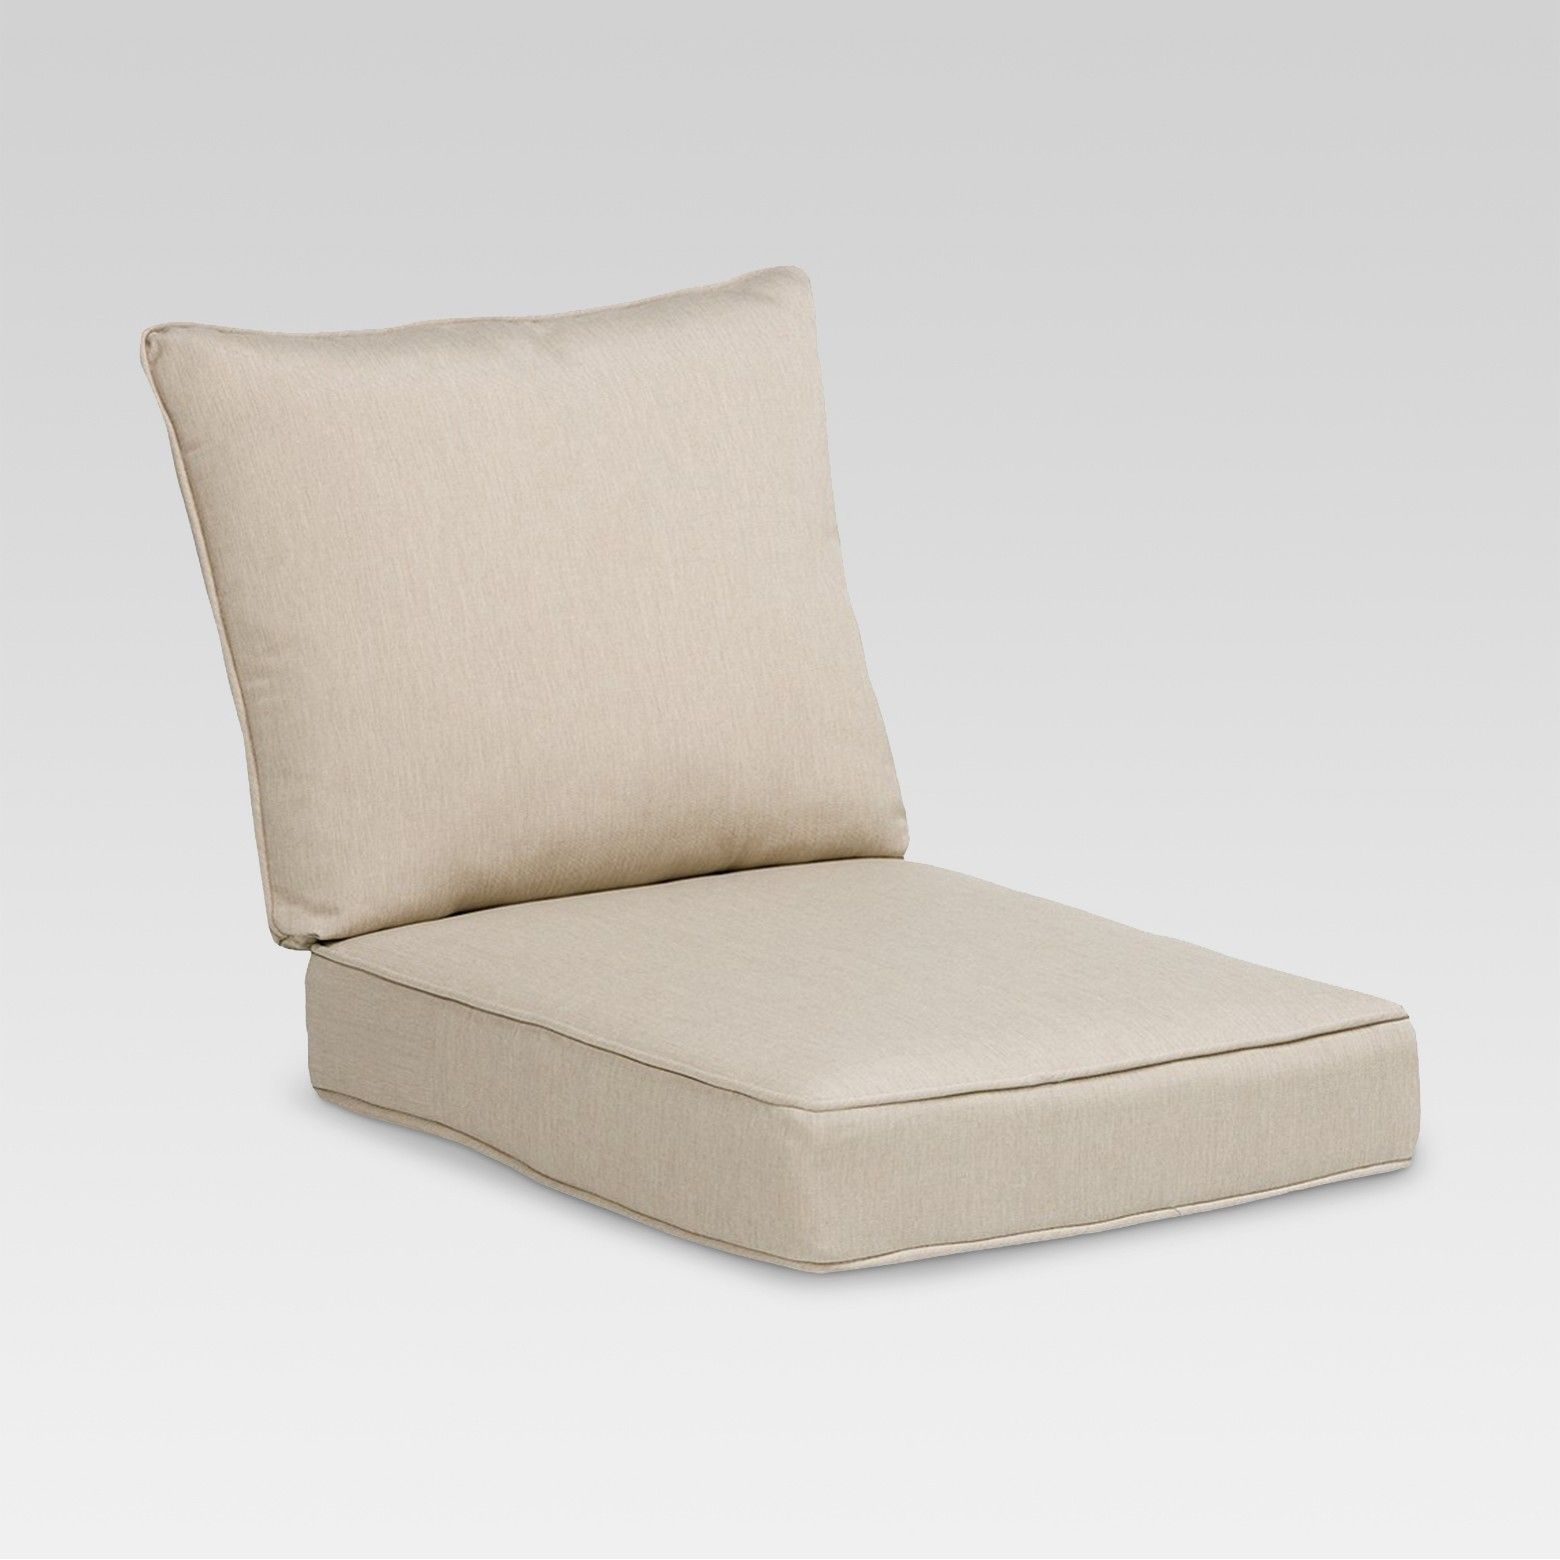 Replacement Cushions For Outdoor Chair And Ottoman